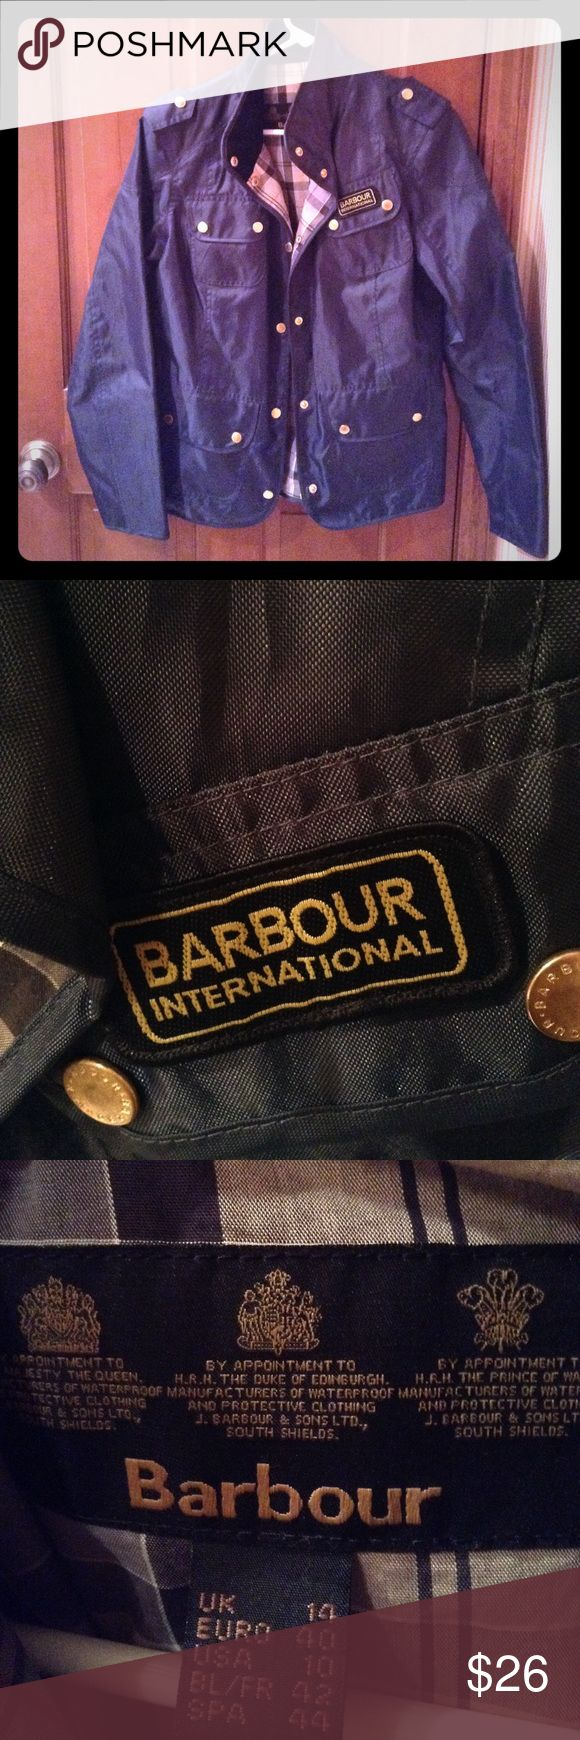 Barbour International Jacket Gently work but still in great condition!! Barbour Jackets & Coats